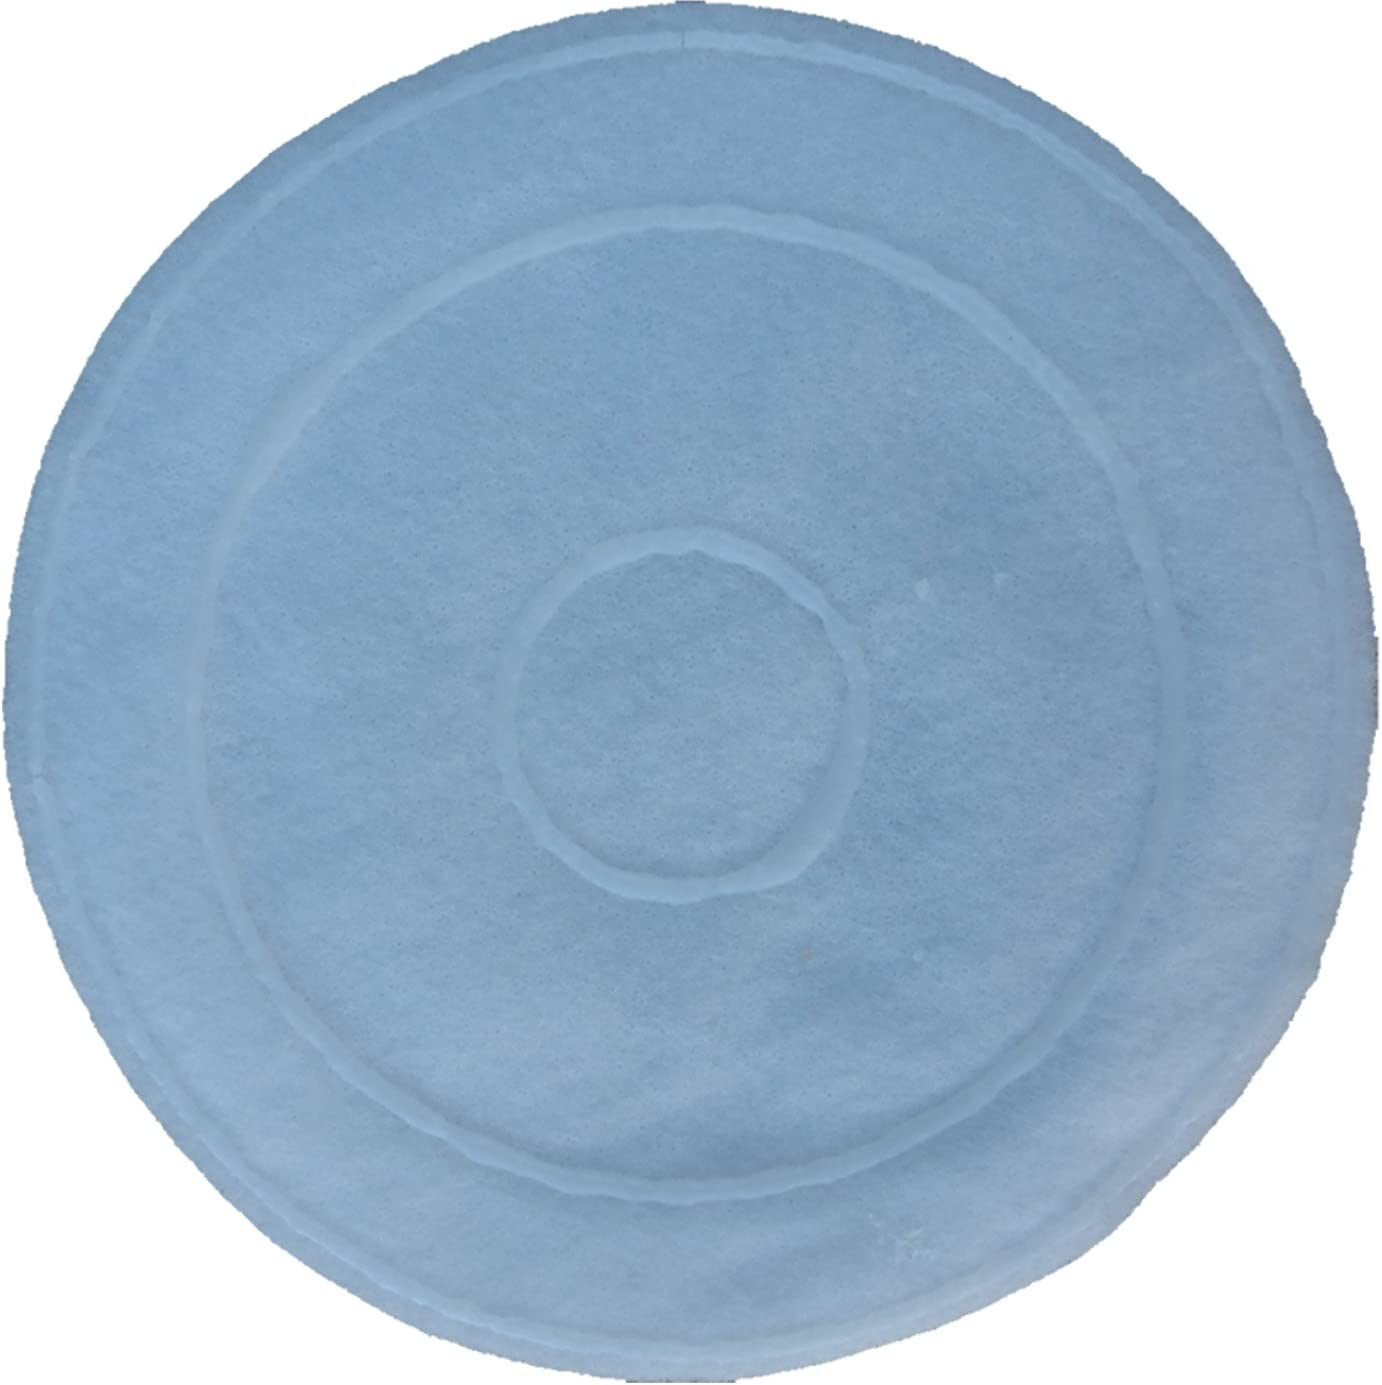 Dyson Dc07 Dc14 Replacment Post Motor Filter Lid Pad # 10-2302-03